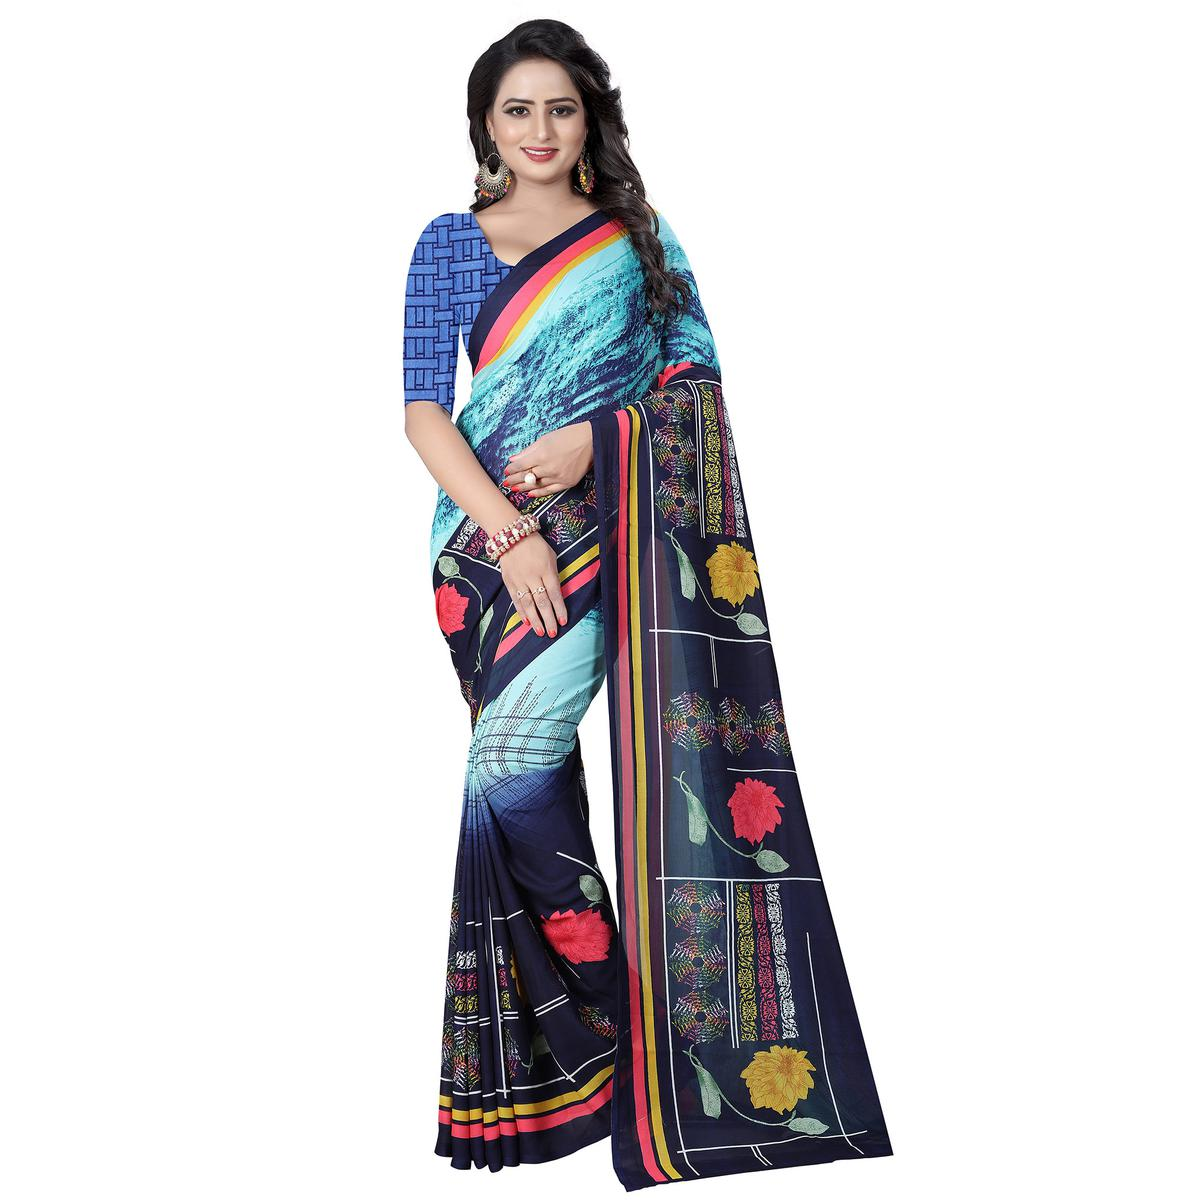 Capricious Blue Colored Casual Wear Printed Georgette Saree